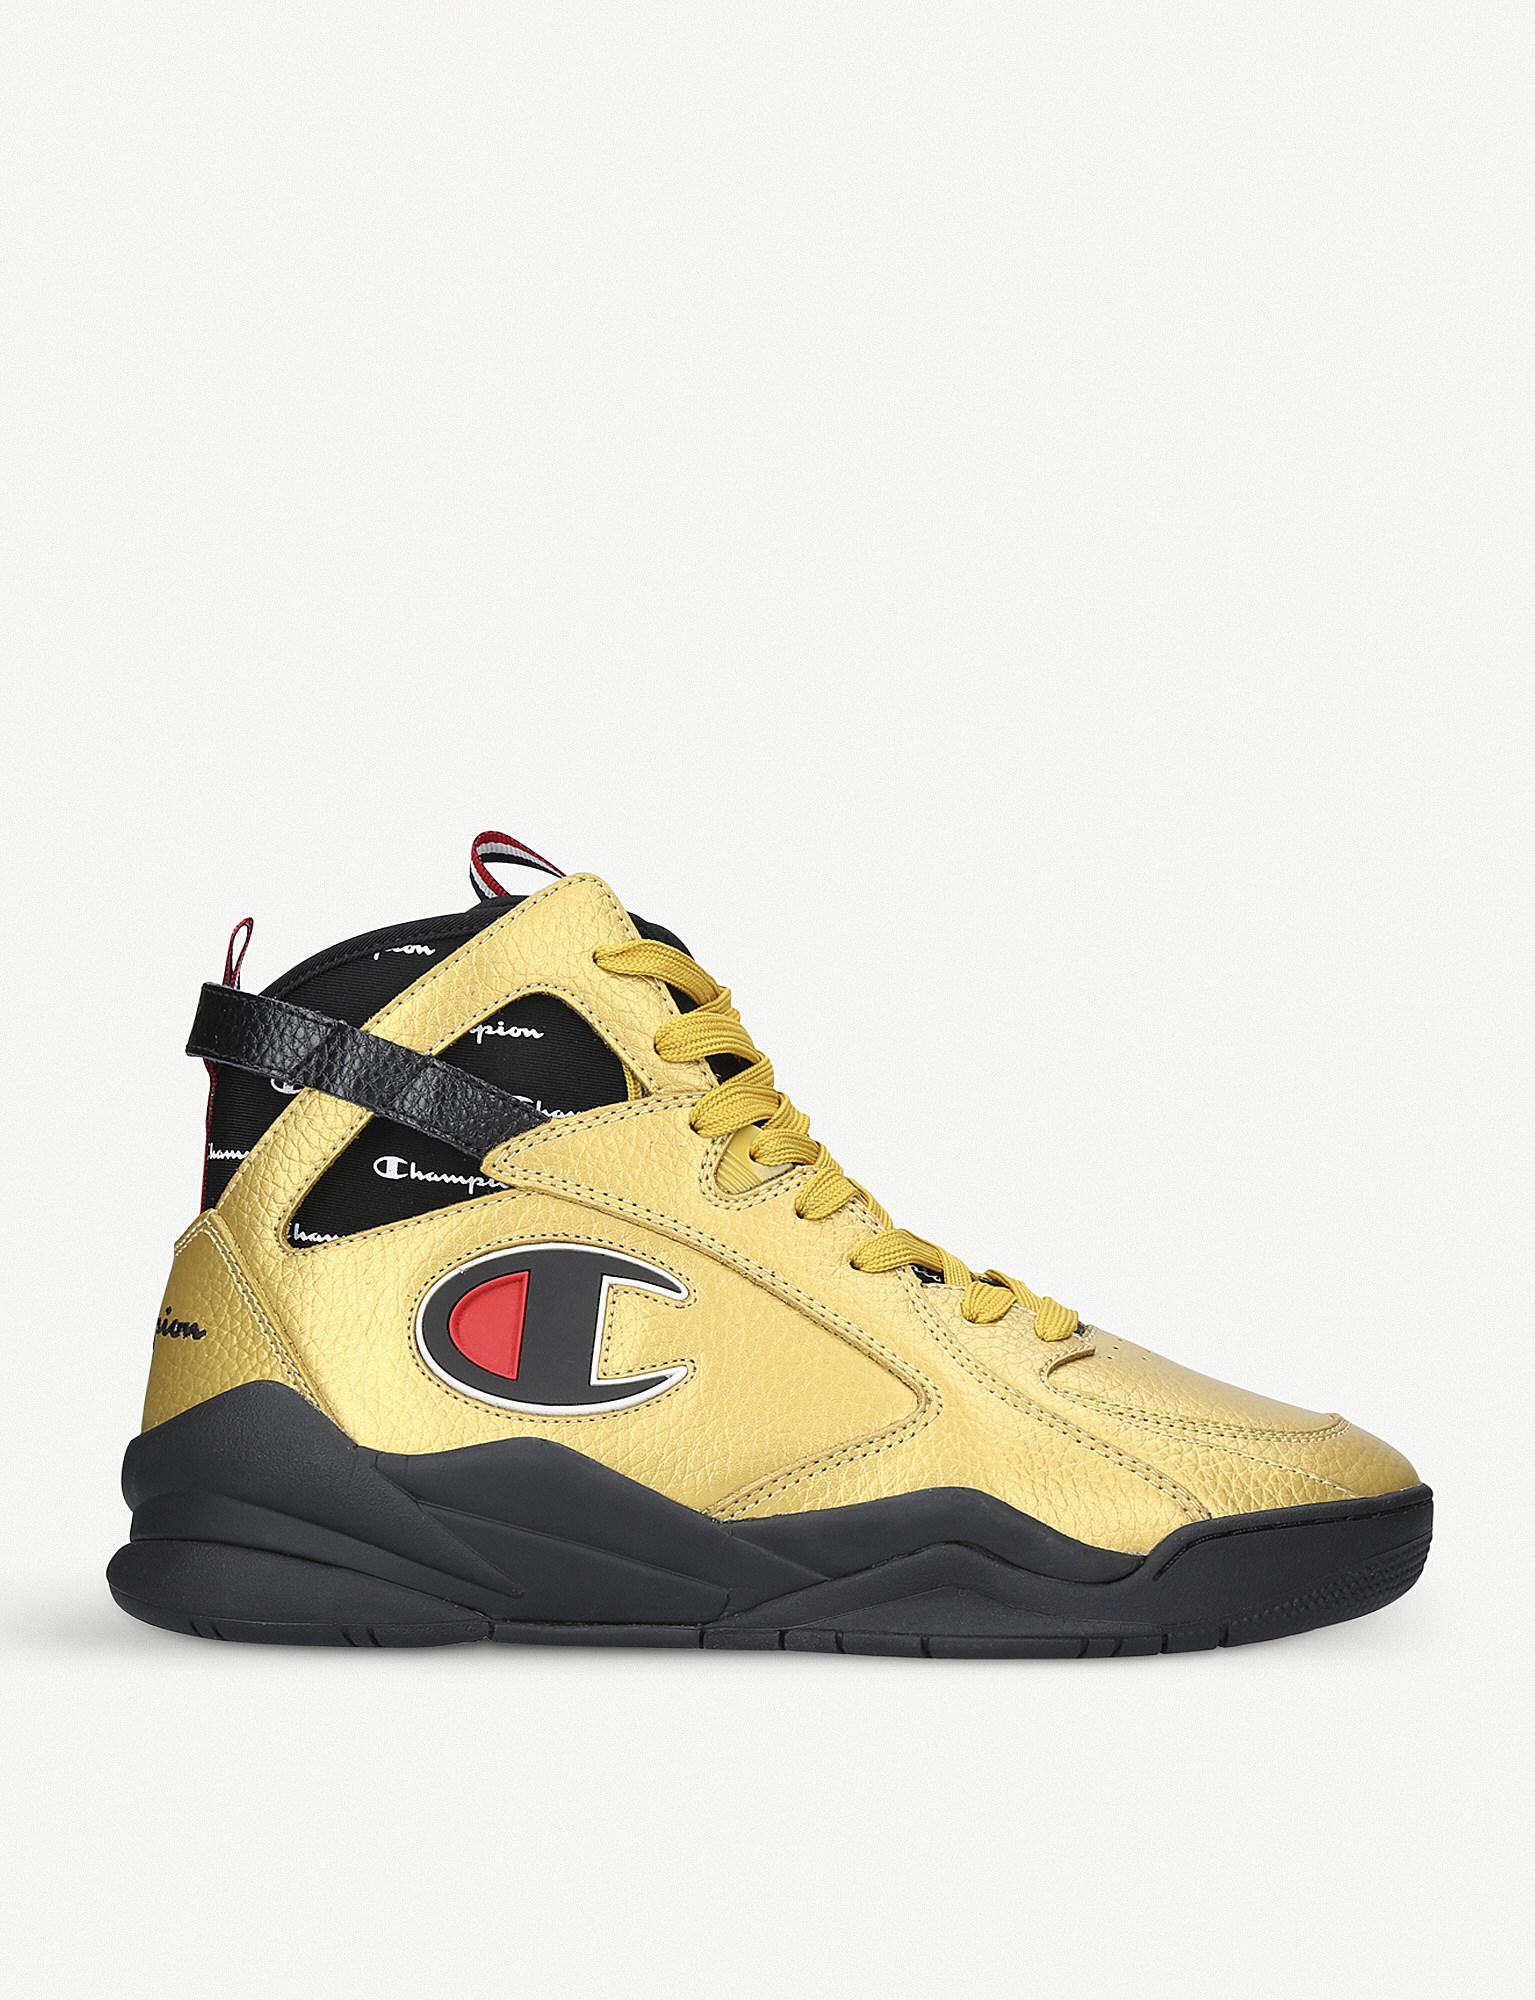 Champion zone 93 high sneakers outlet clearance low cost cheap online byHSViD1a6